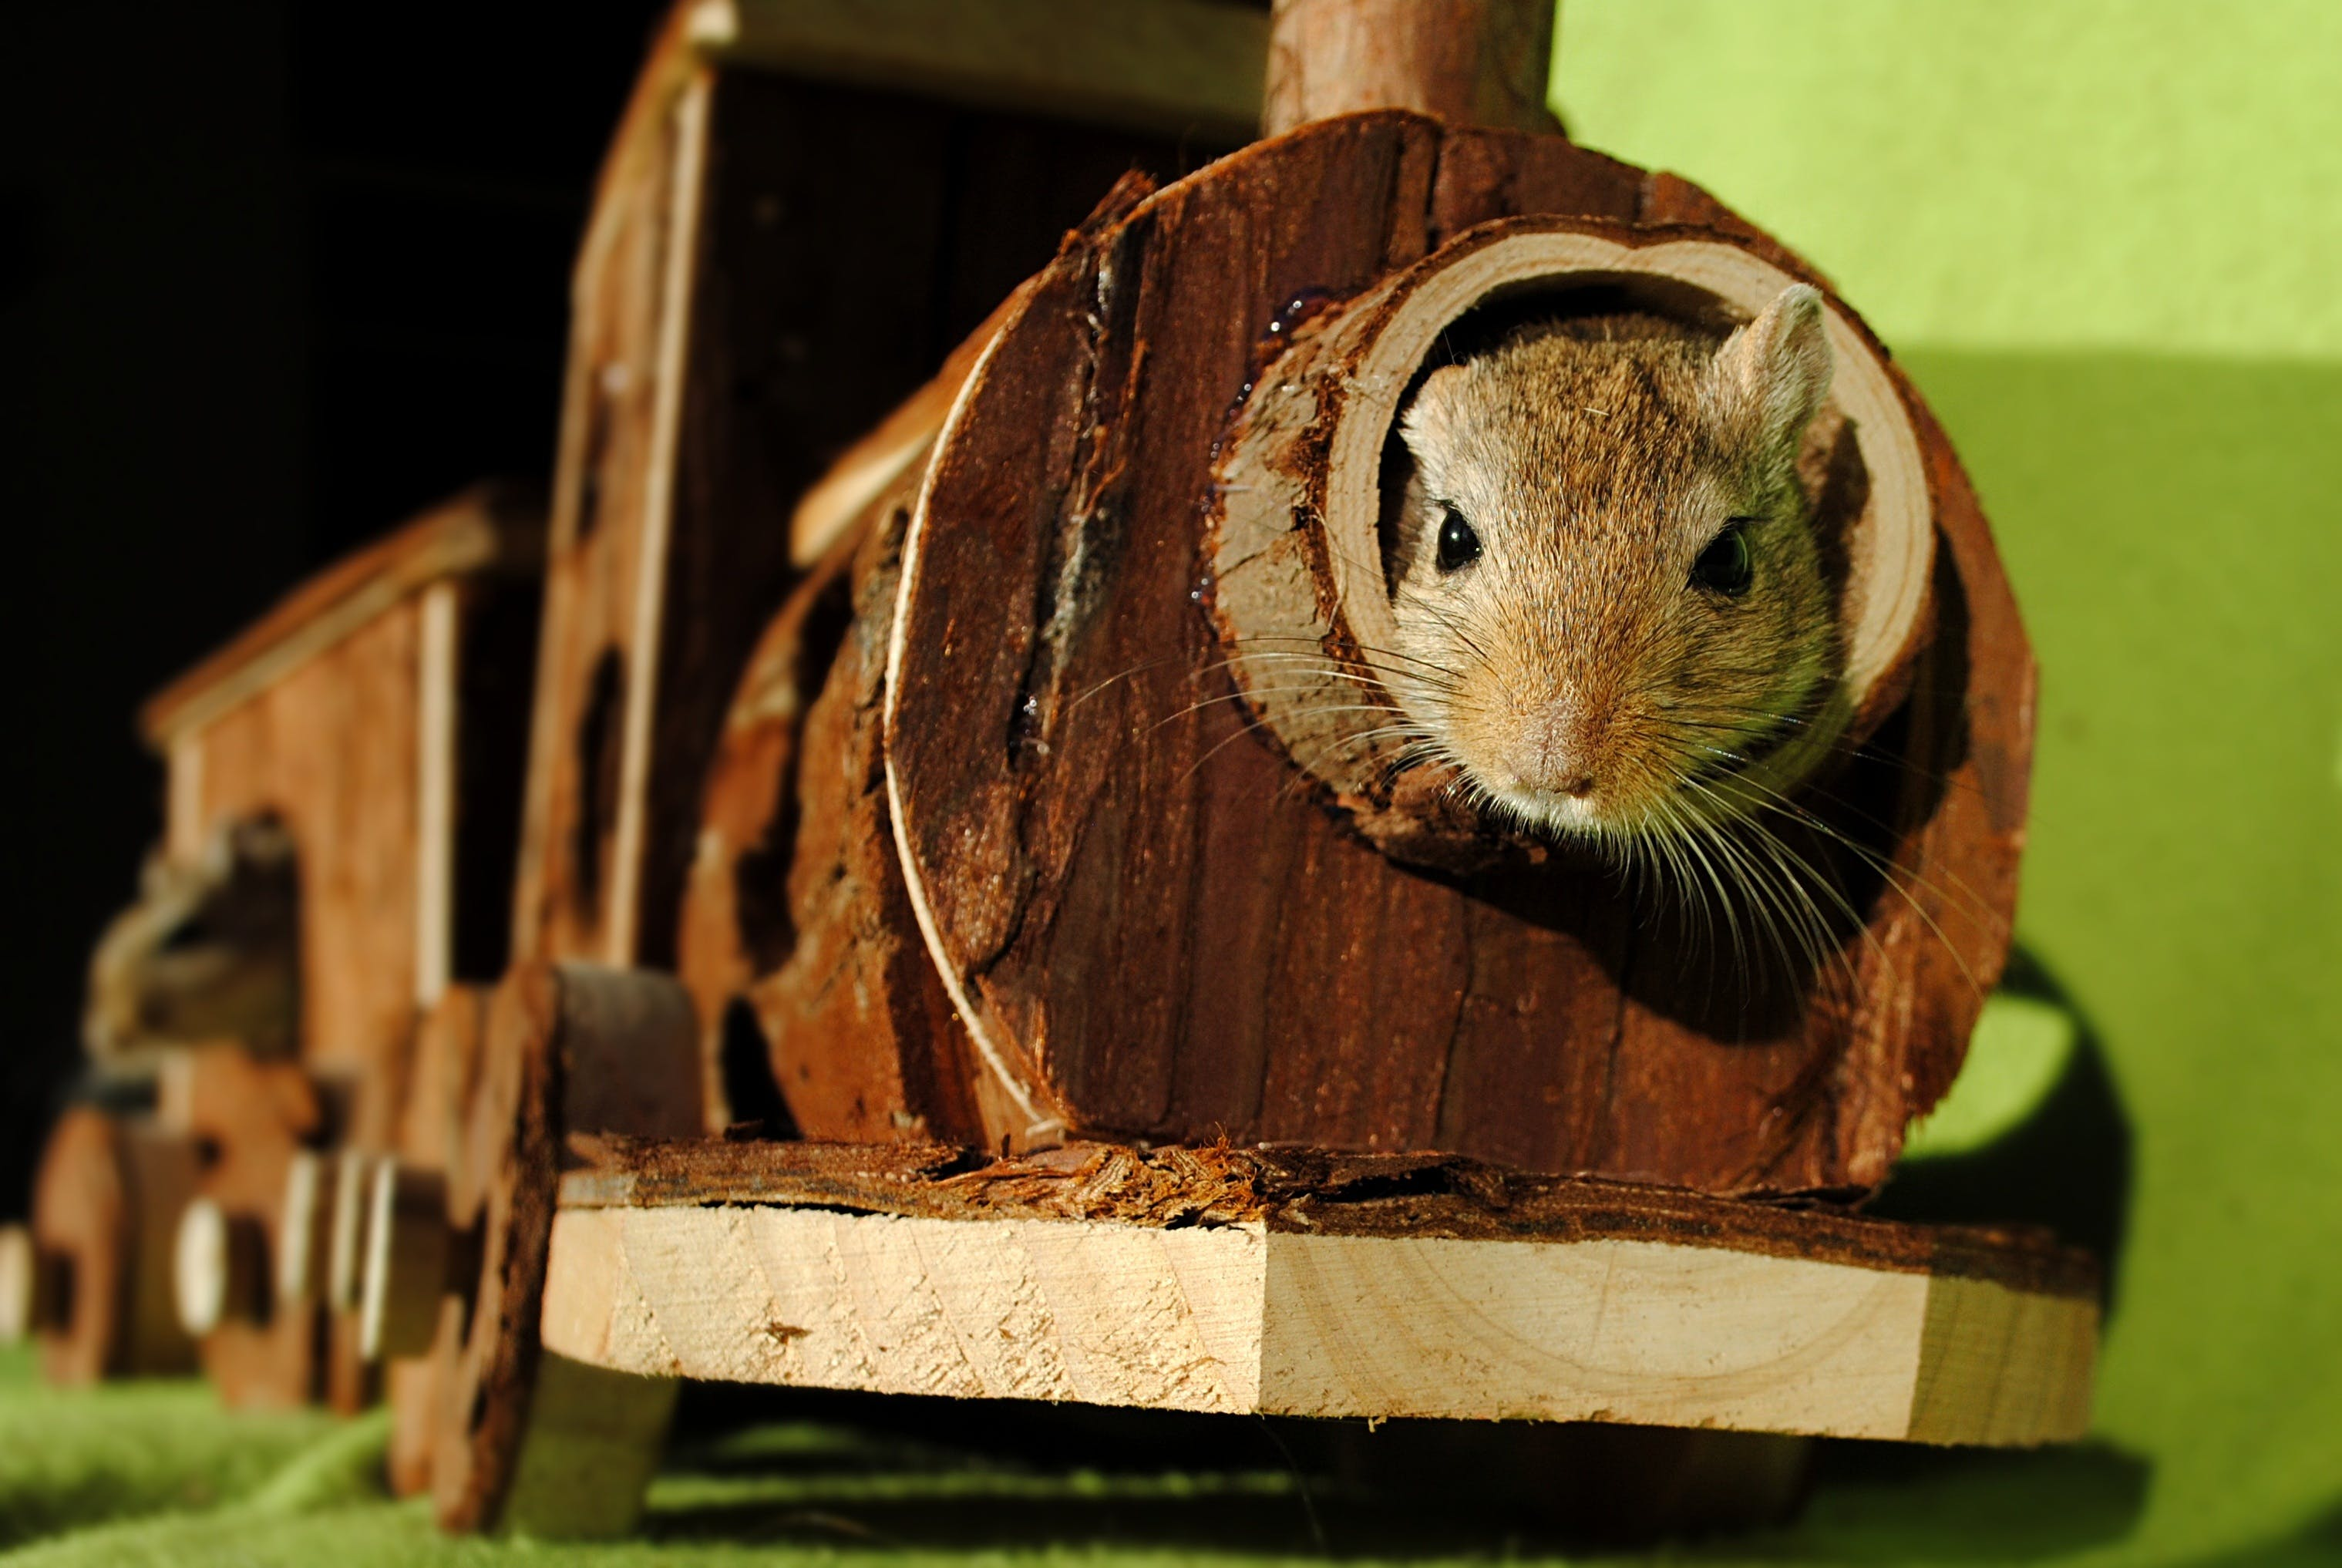 Brown Squirrel Inside of Brown Wooden Train Miniature